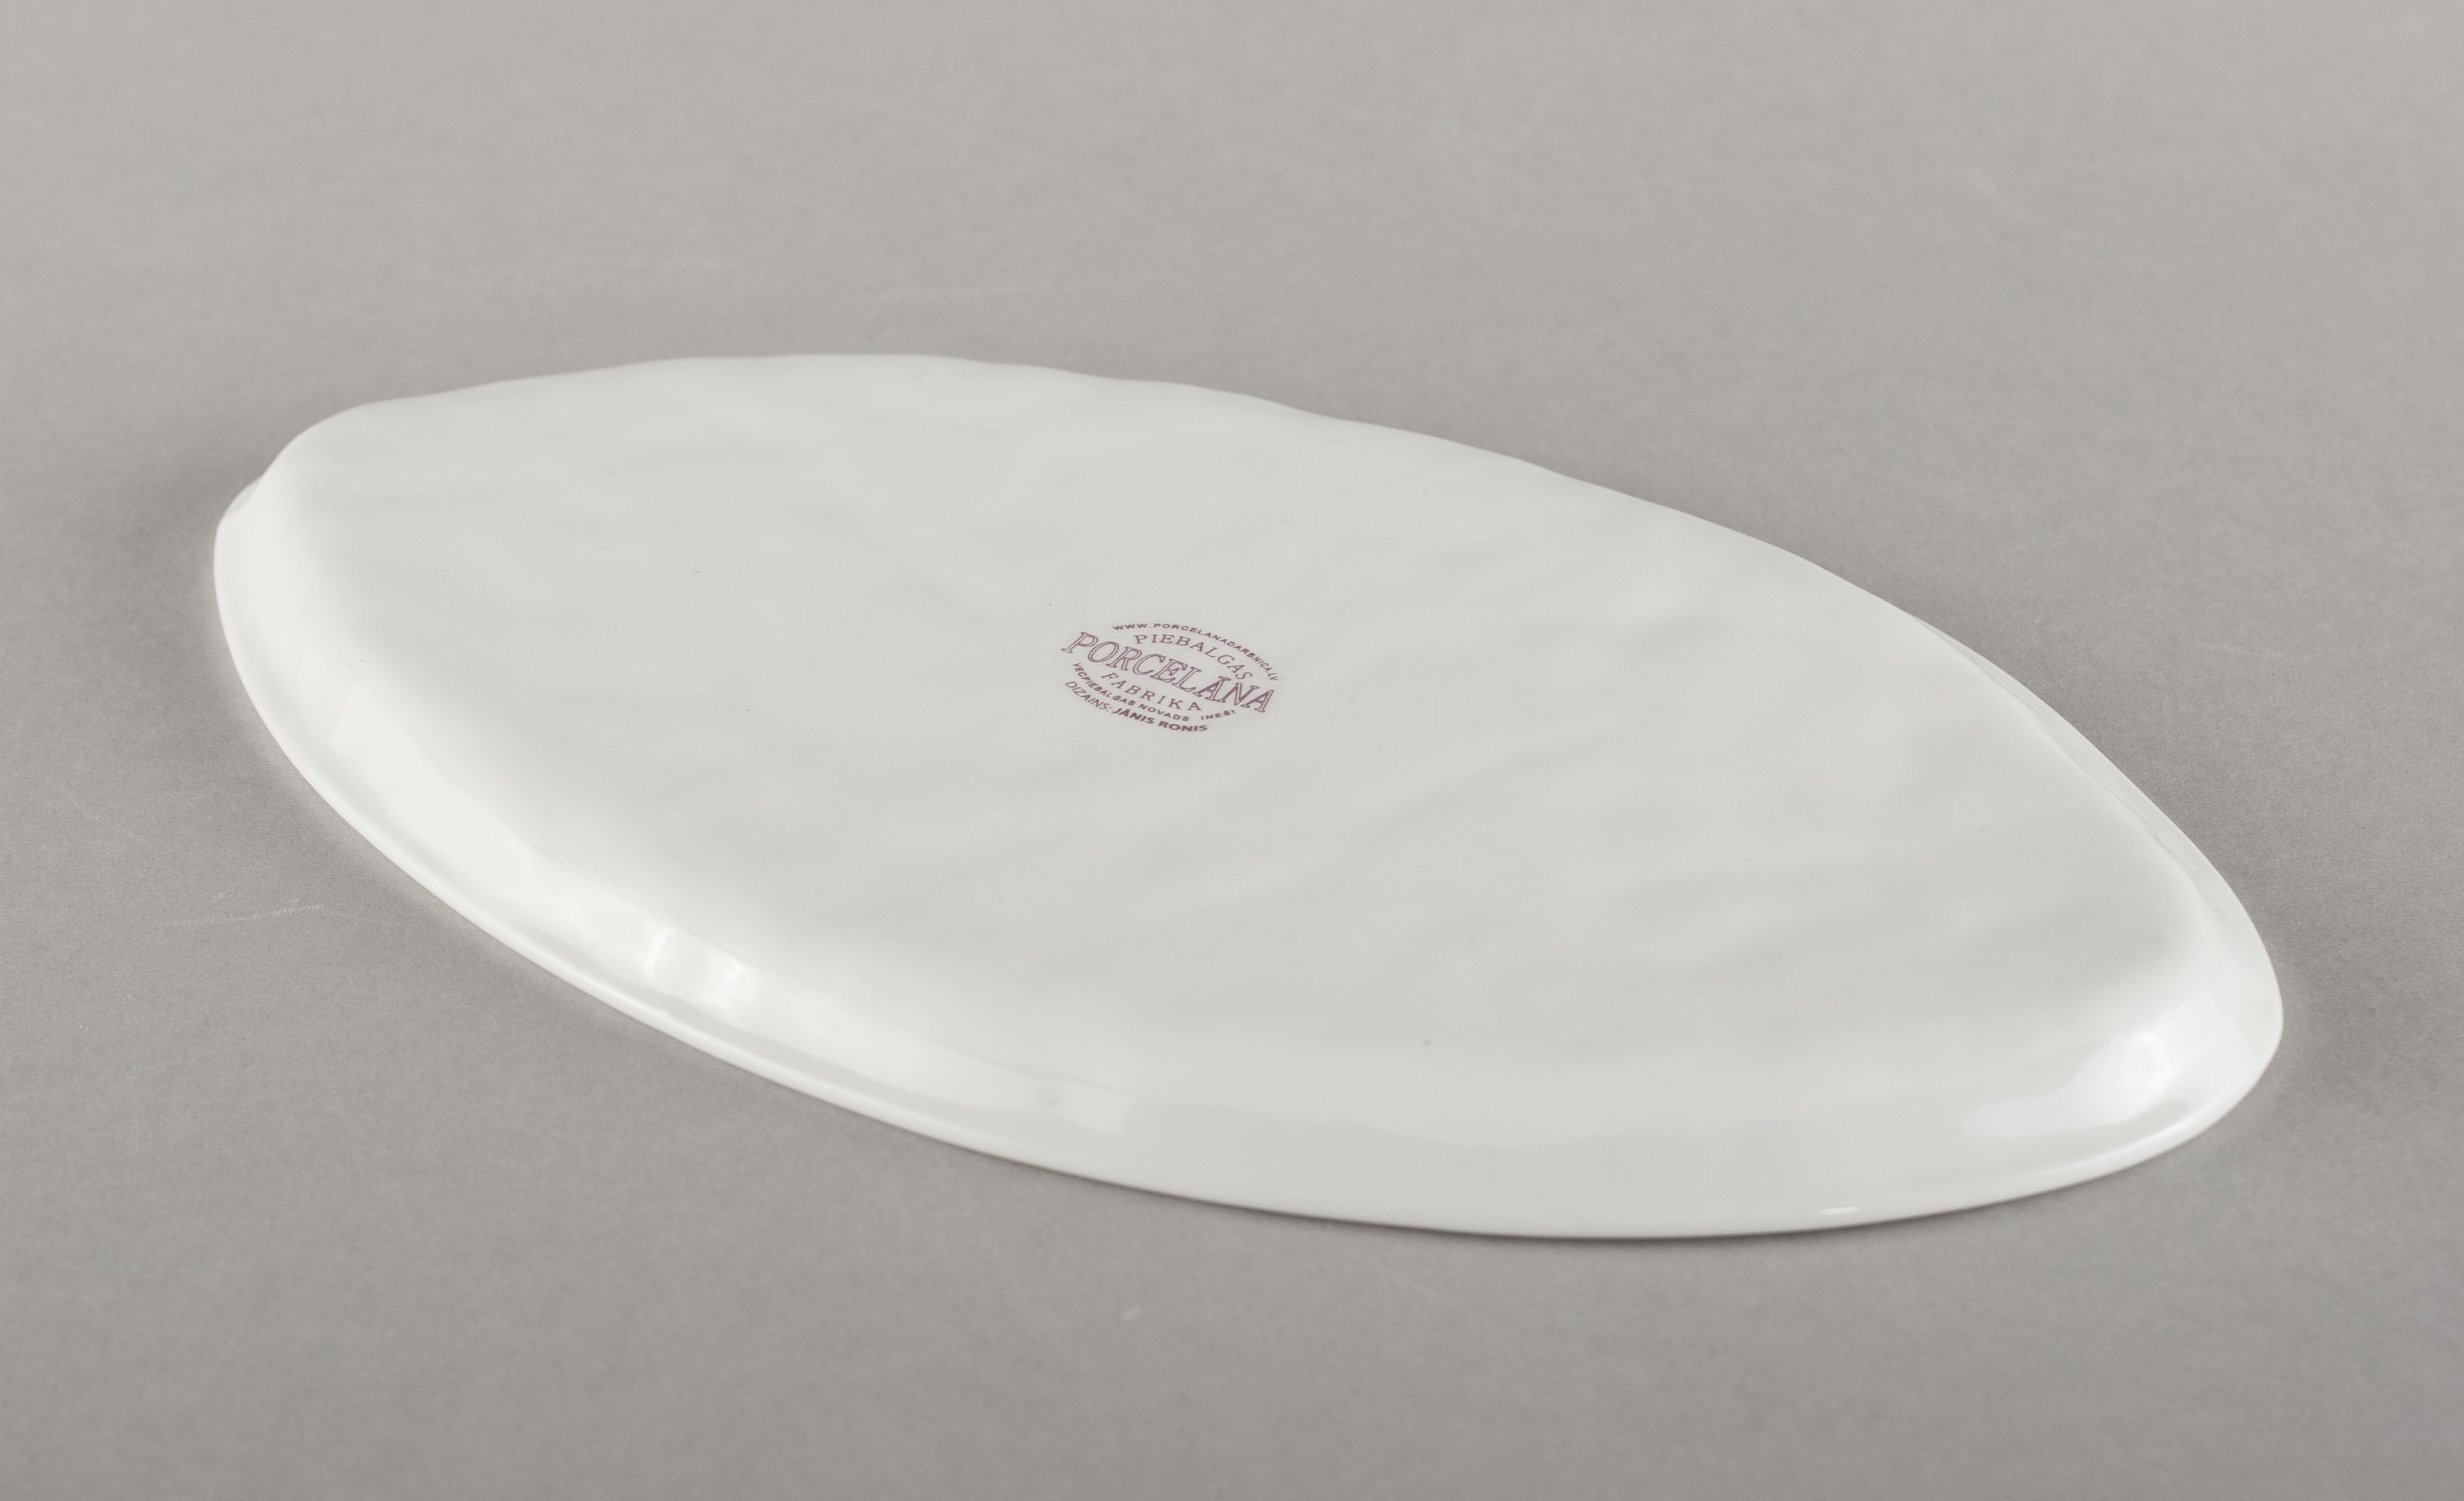 Porcelain Crumpled Co Plate